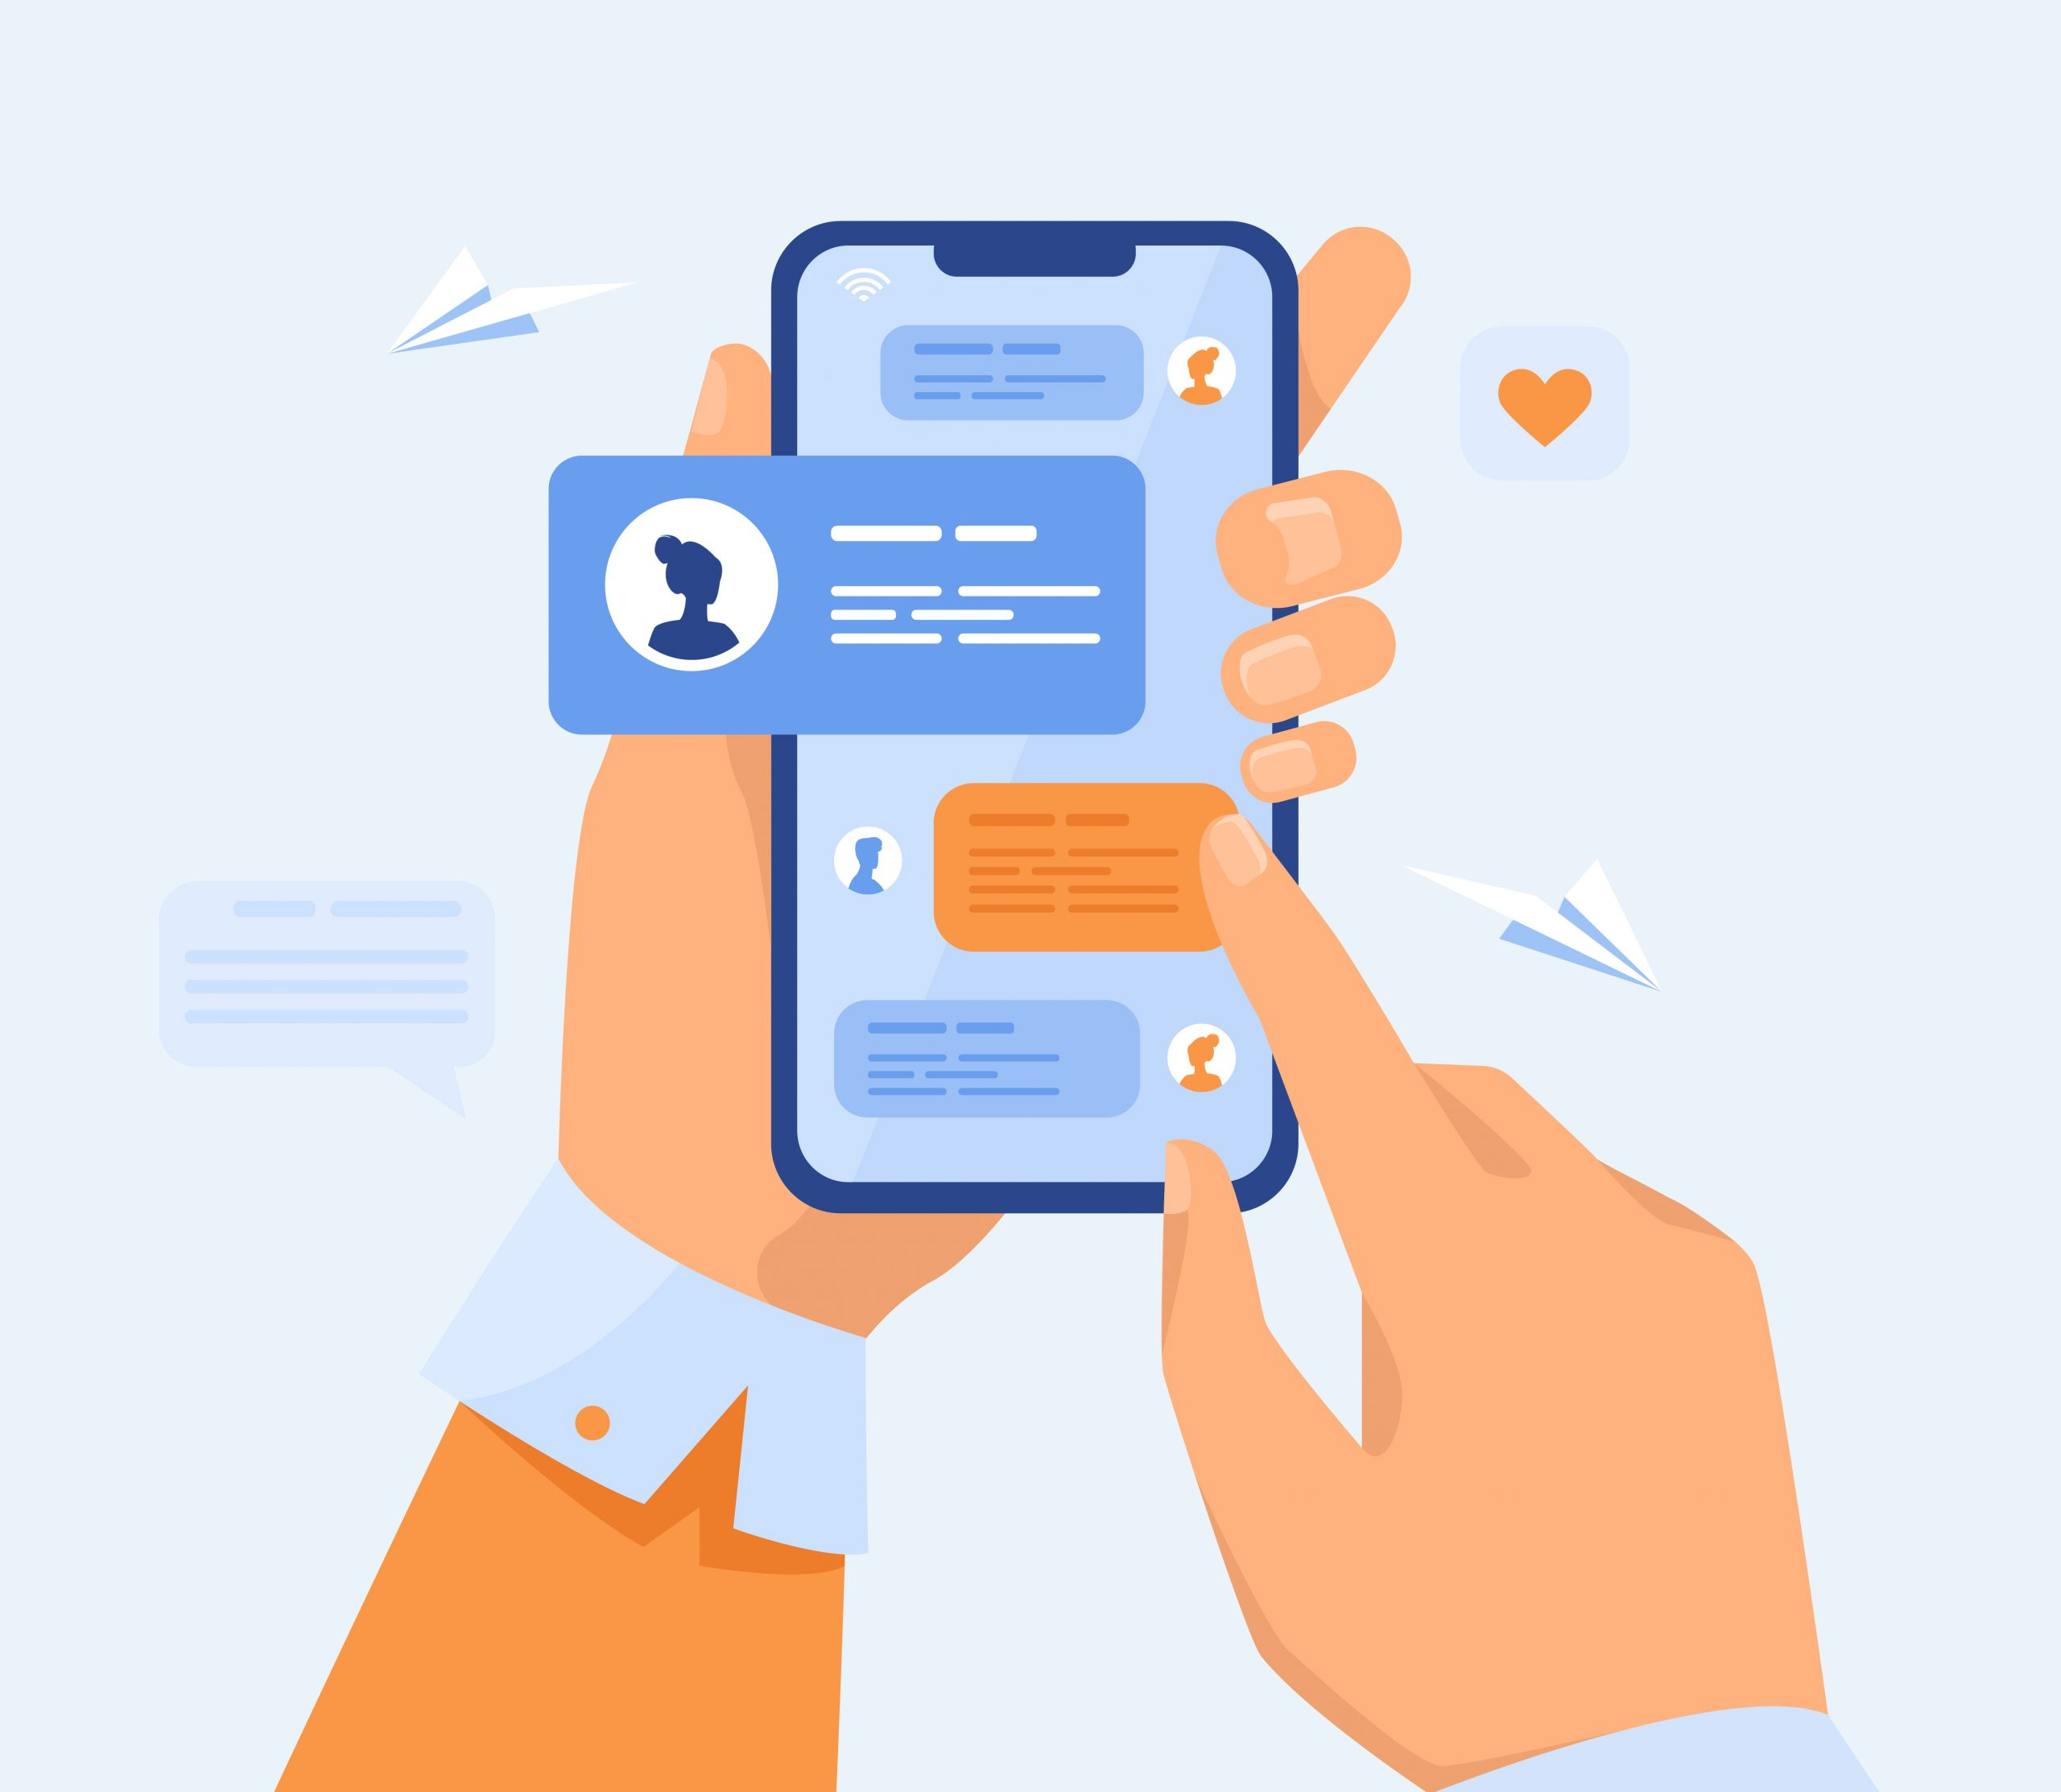 Benefits of using Messenger for your business